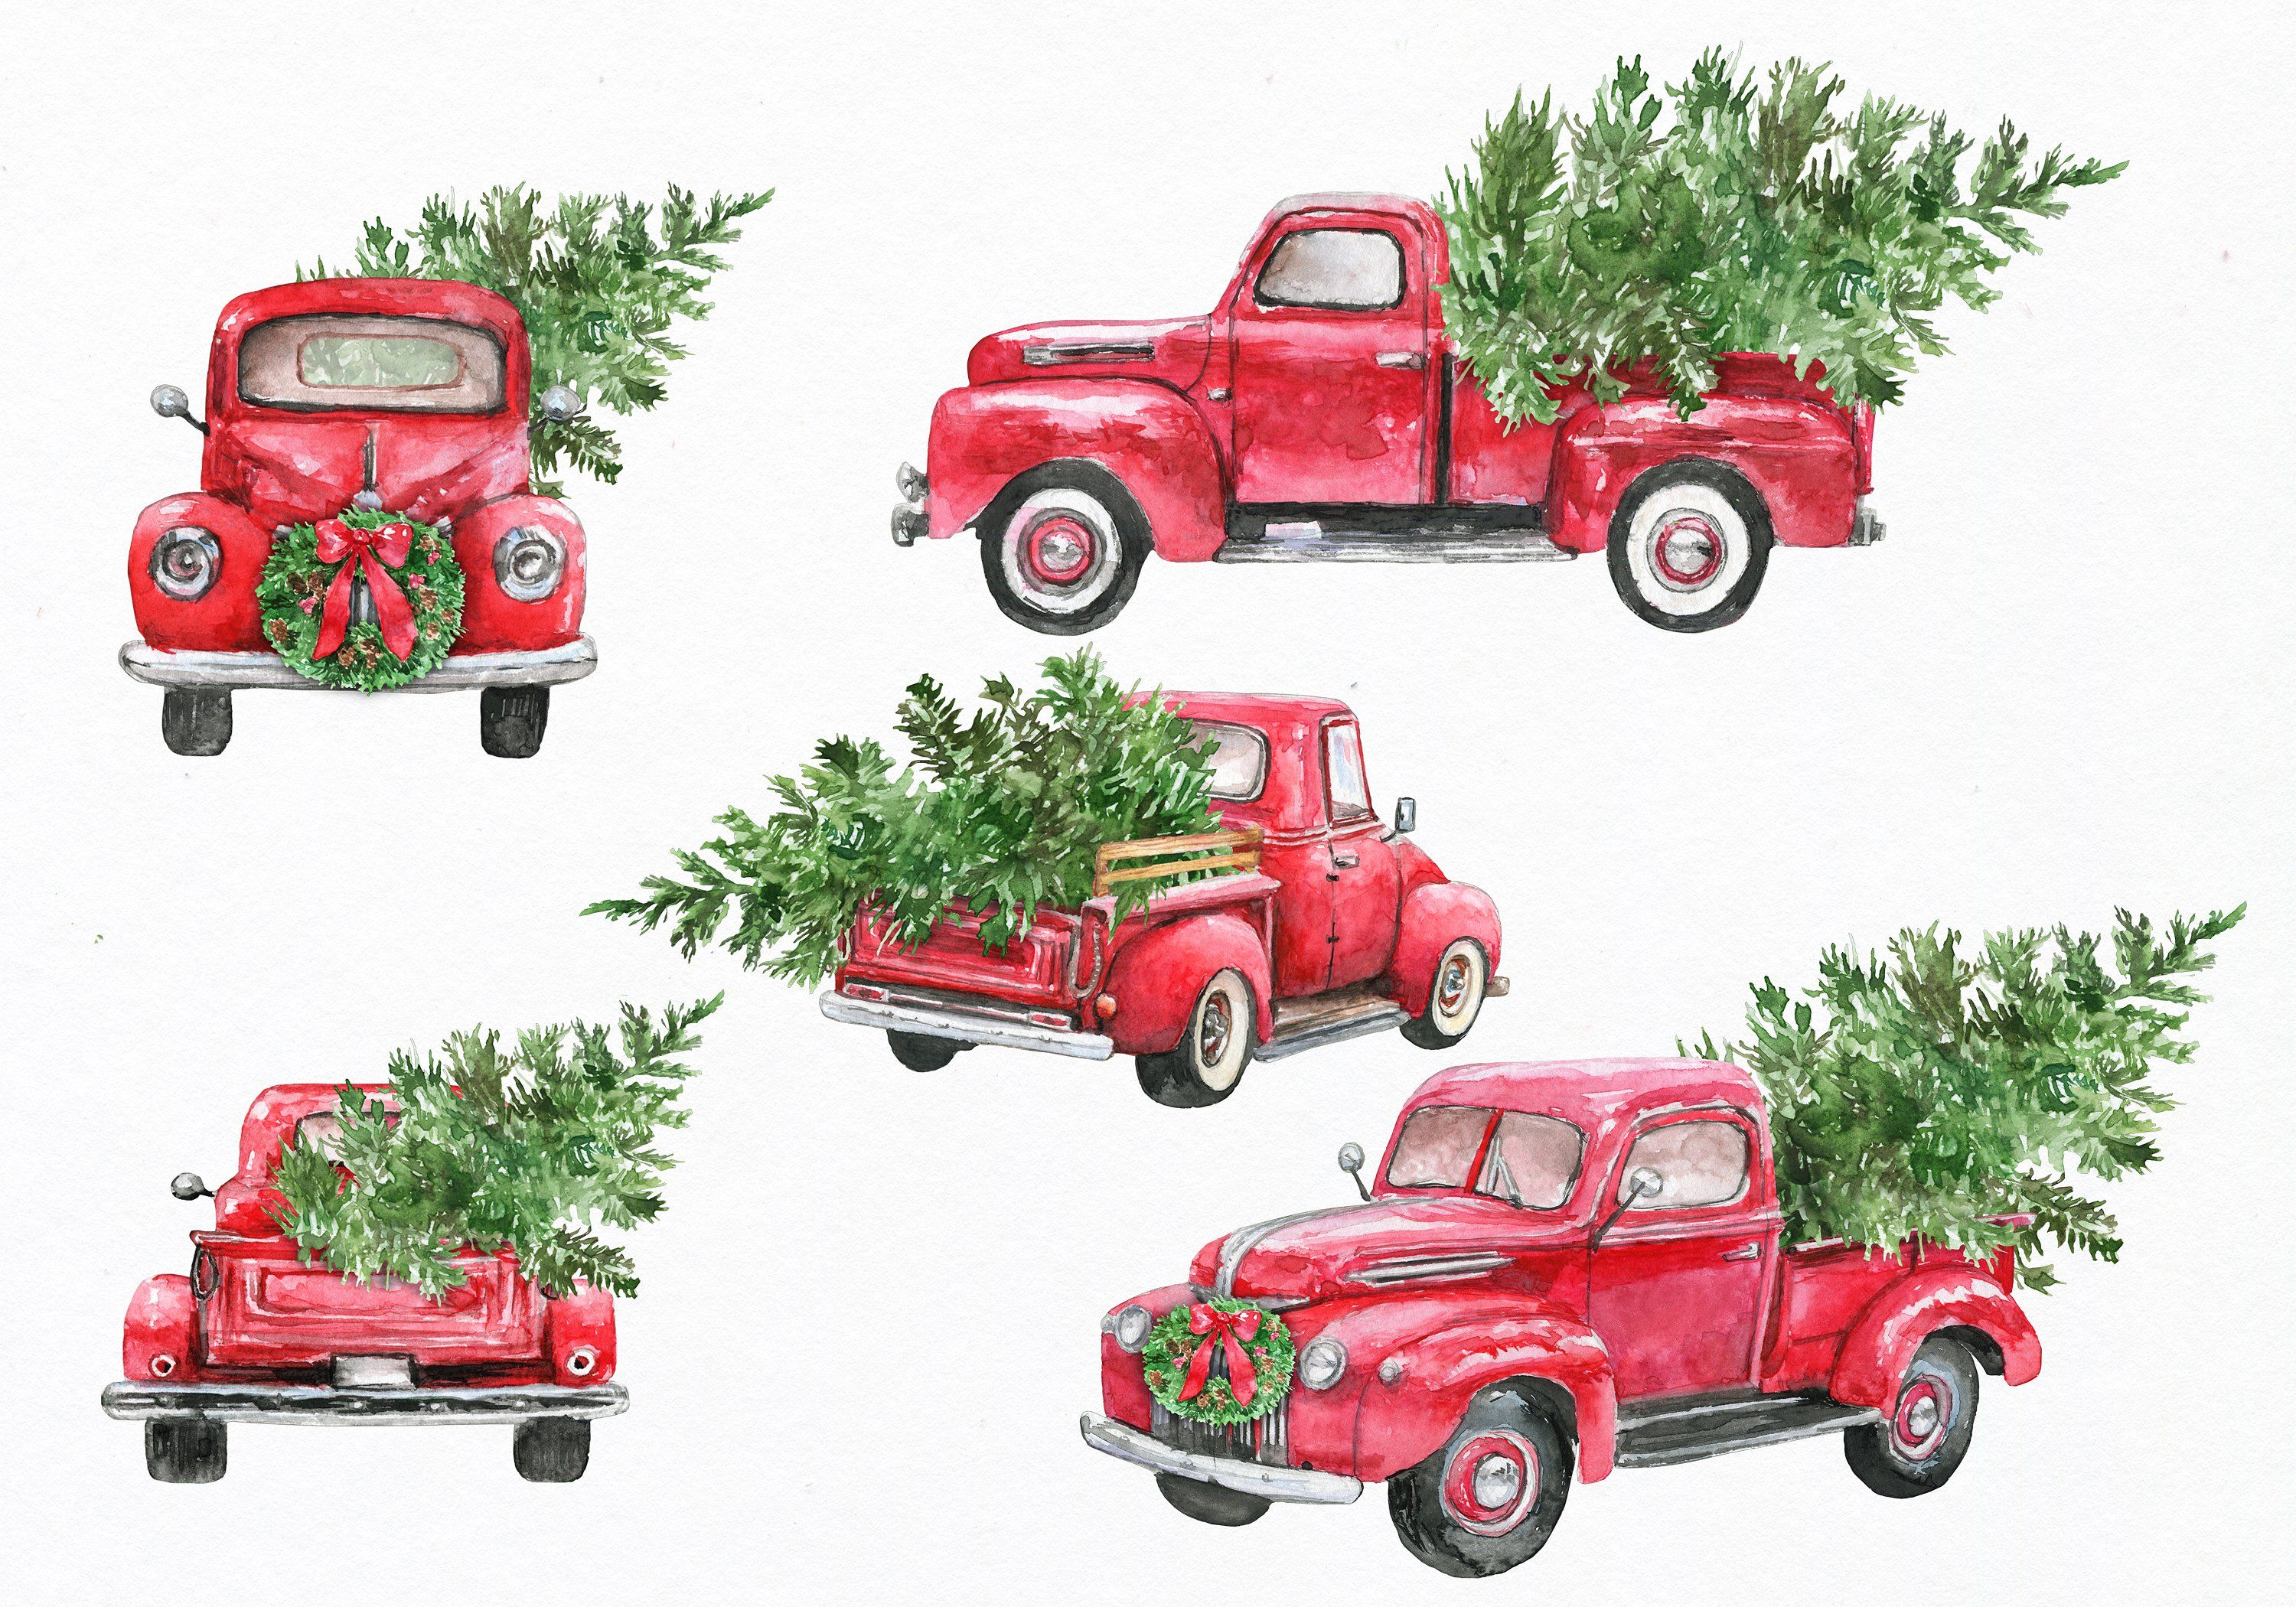 Red Truck Clipart Watercolor By Ephrazydesign On Creativemarket Christmas Truck Christmas Red Truck Christmas Tree Painting